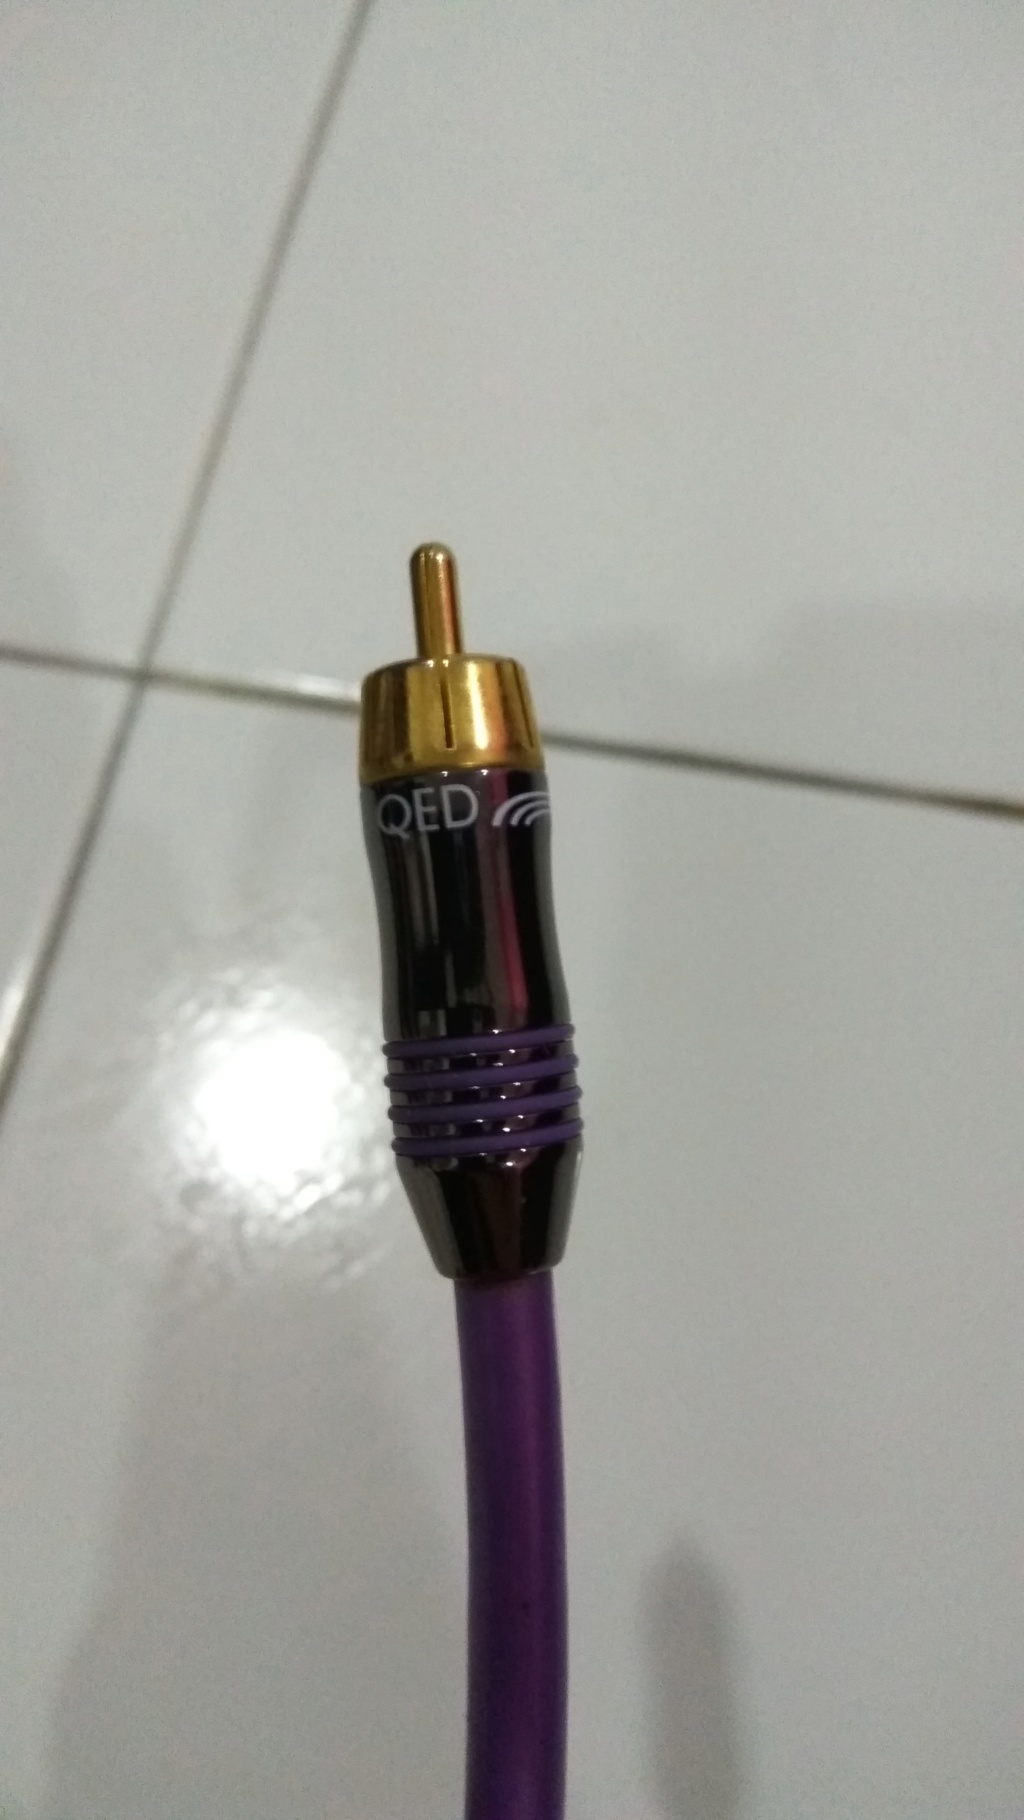 QED Qunex P75 Precision Co-Axial Cable Img_2012